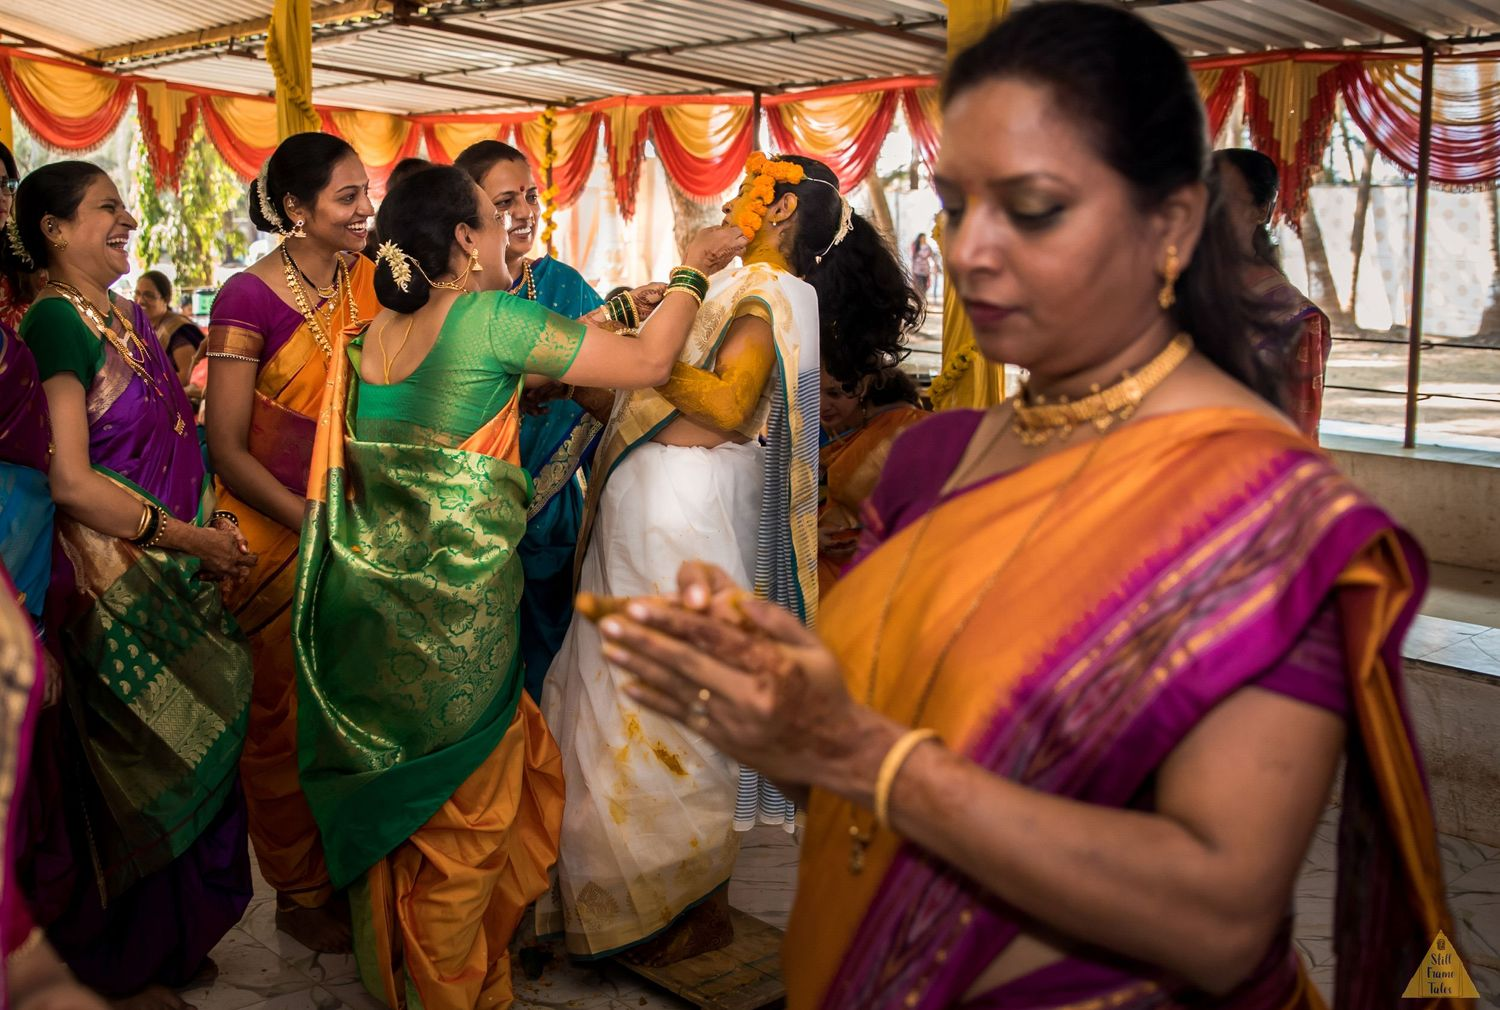 Fun moment of haldi where relatives all together putting haldi on bride's face